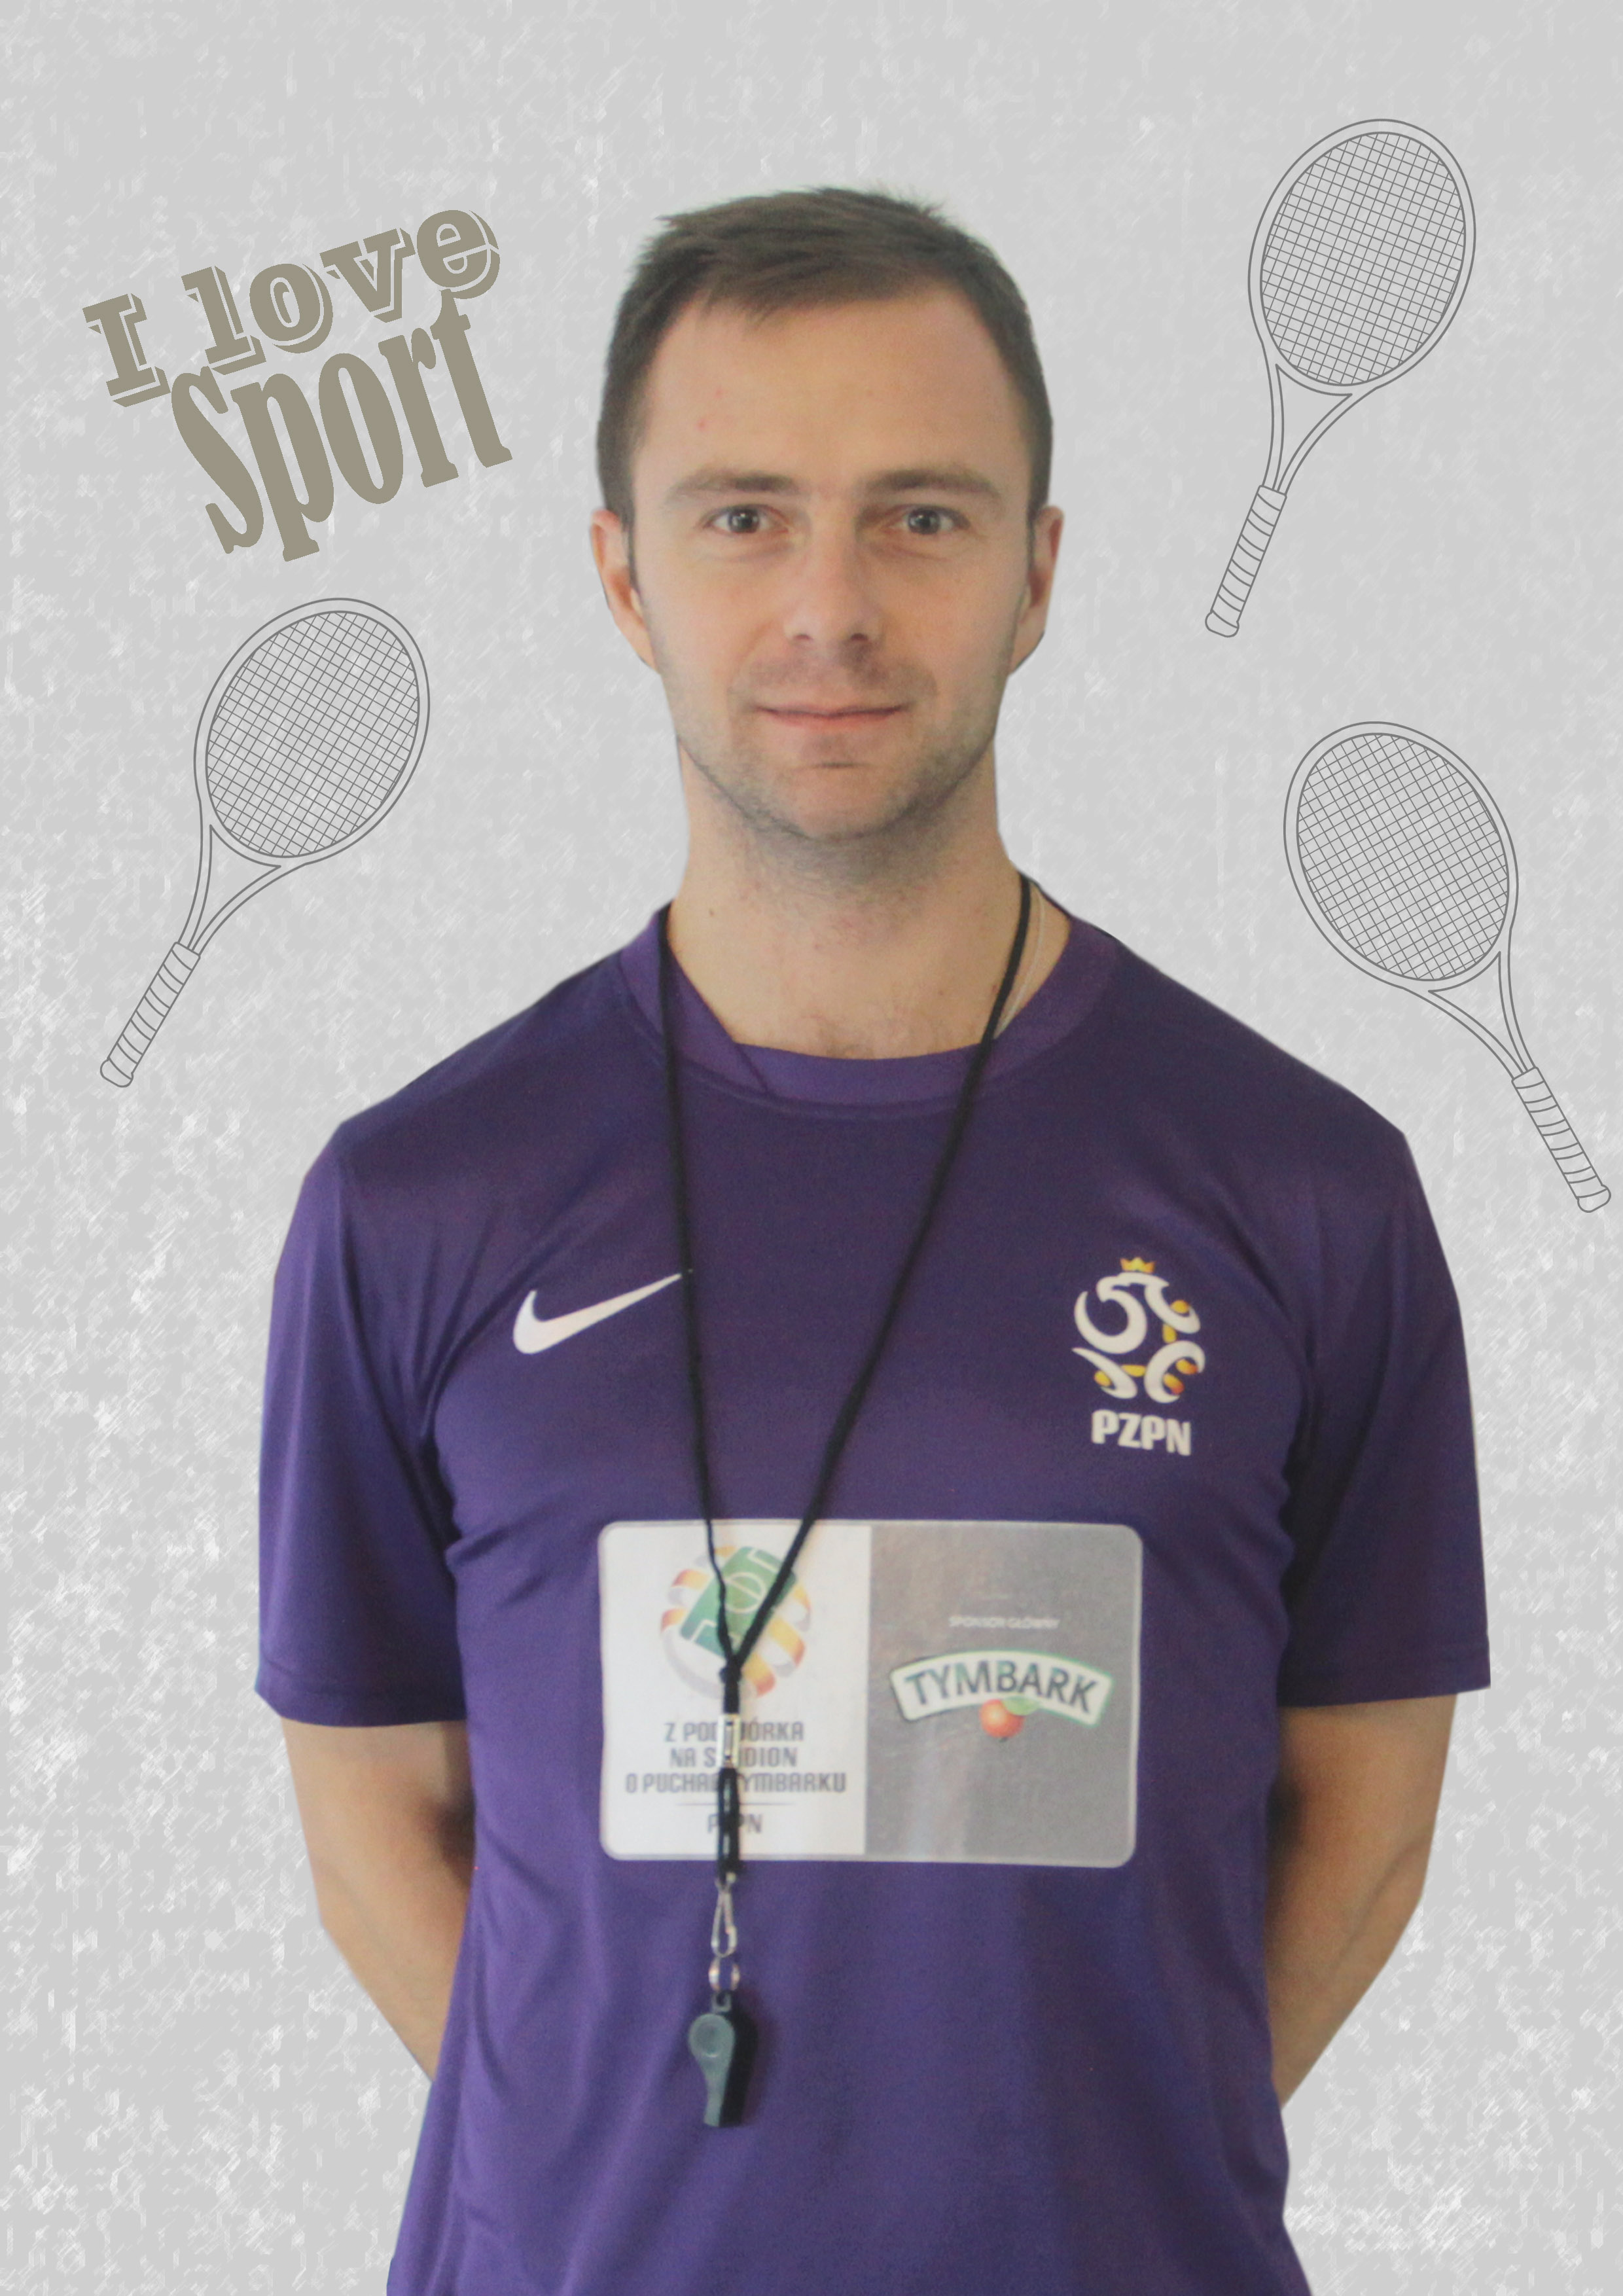 Adam - master / Physical Education & Tennis coach